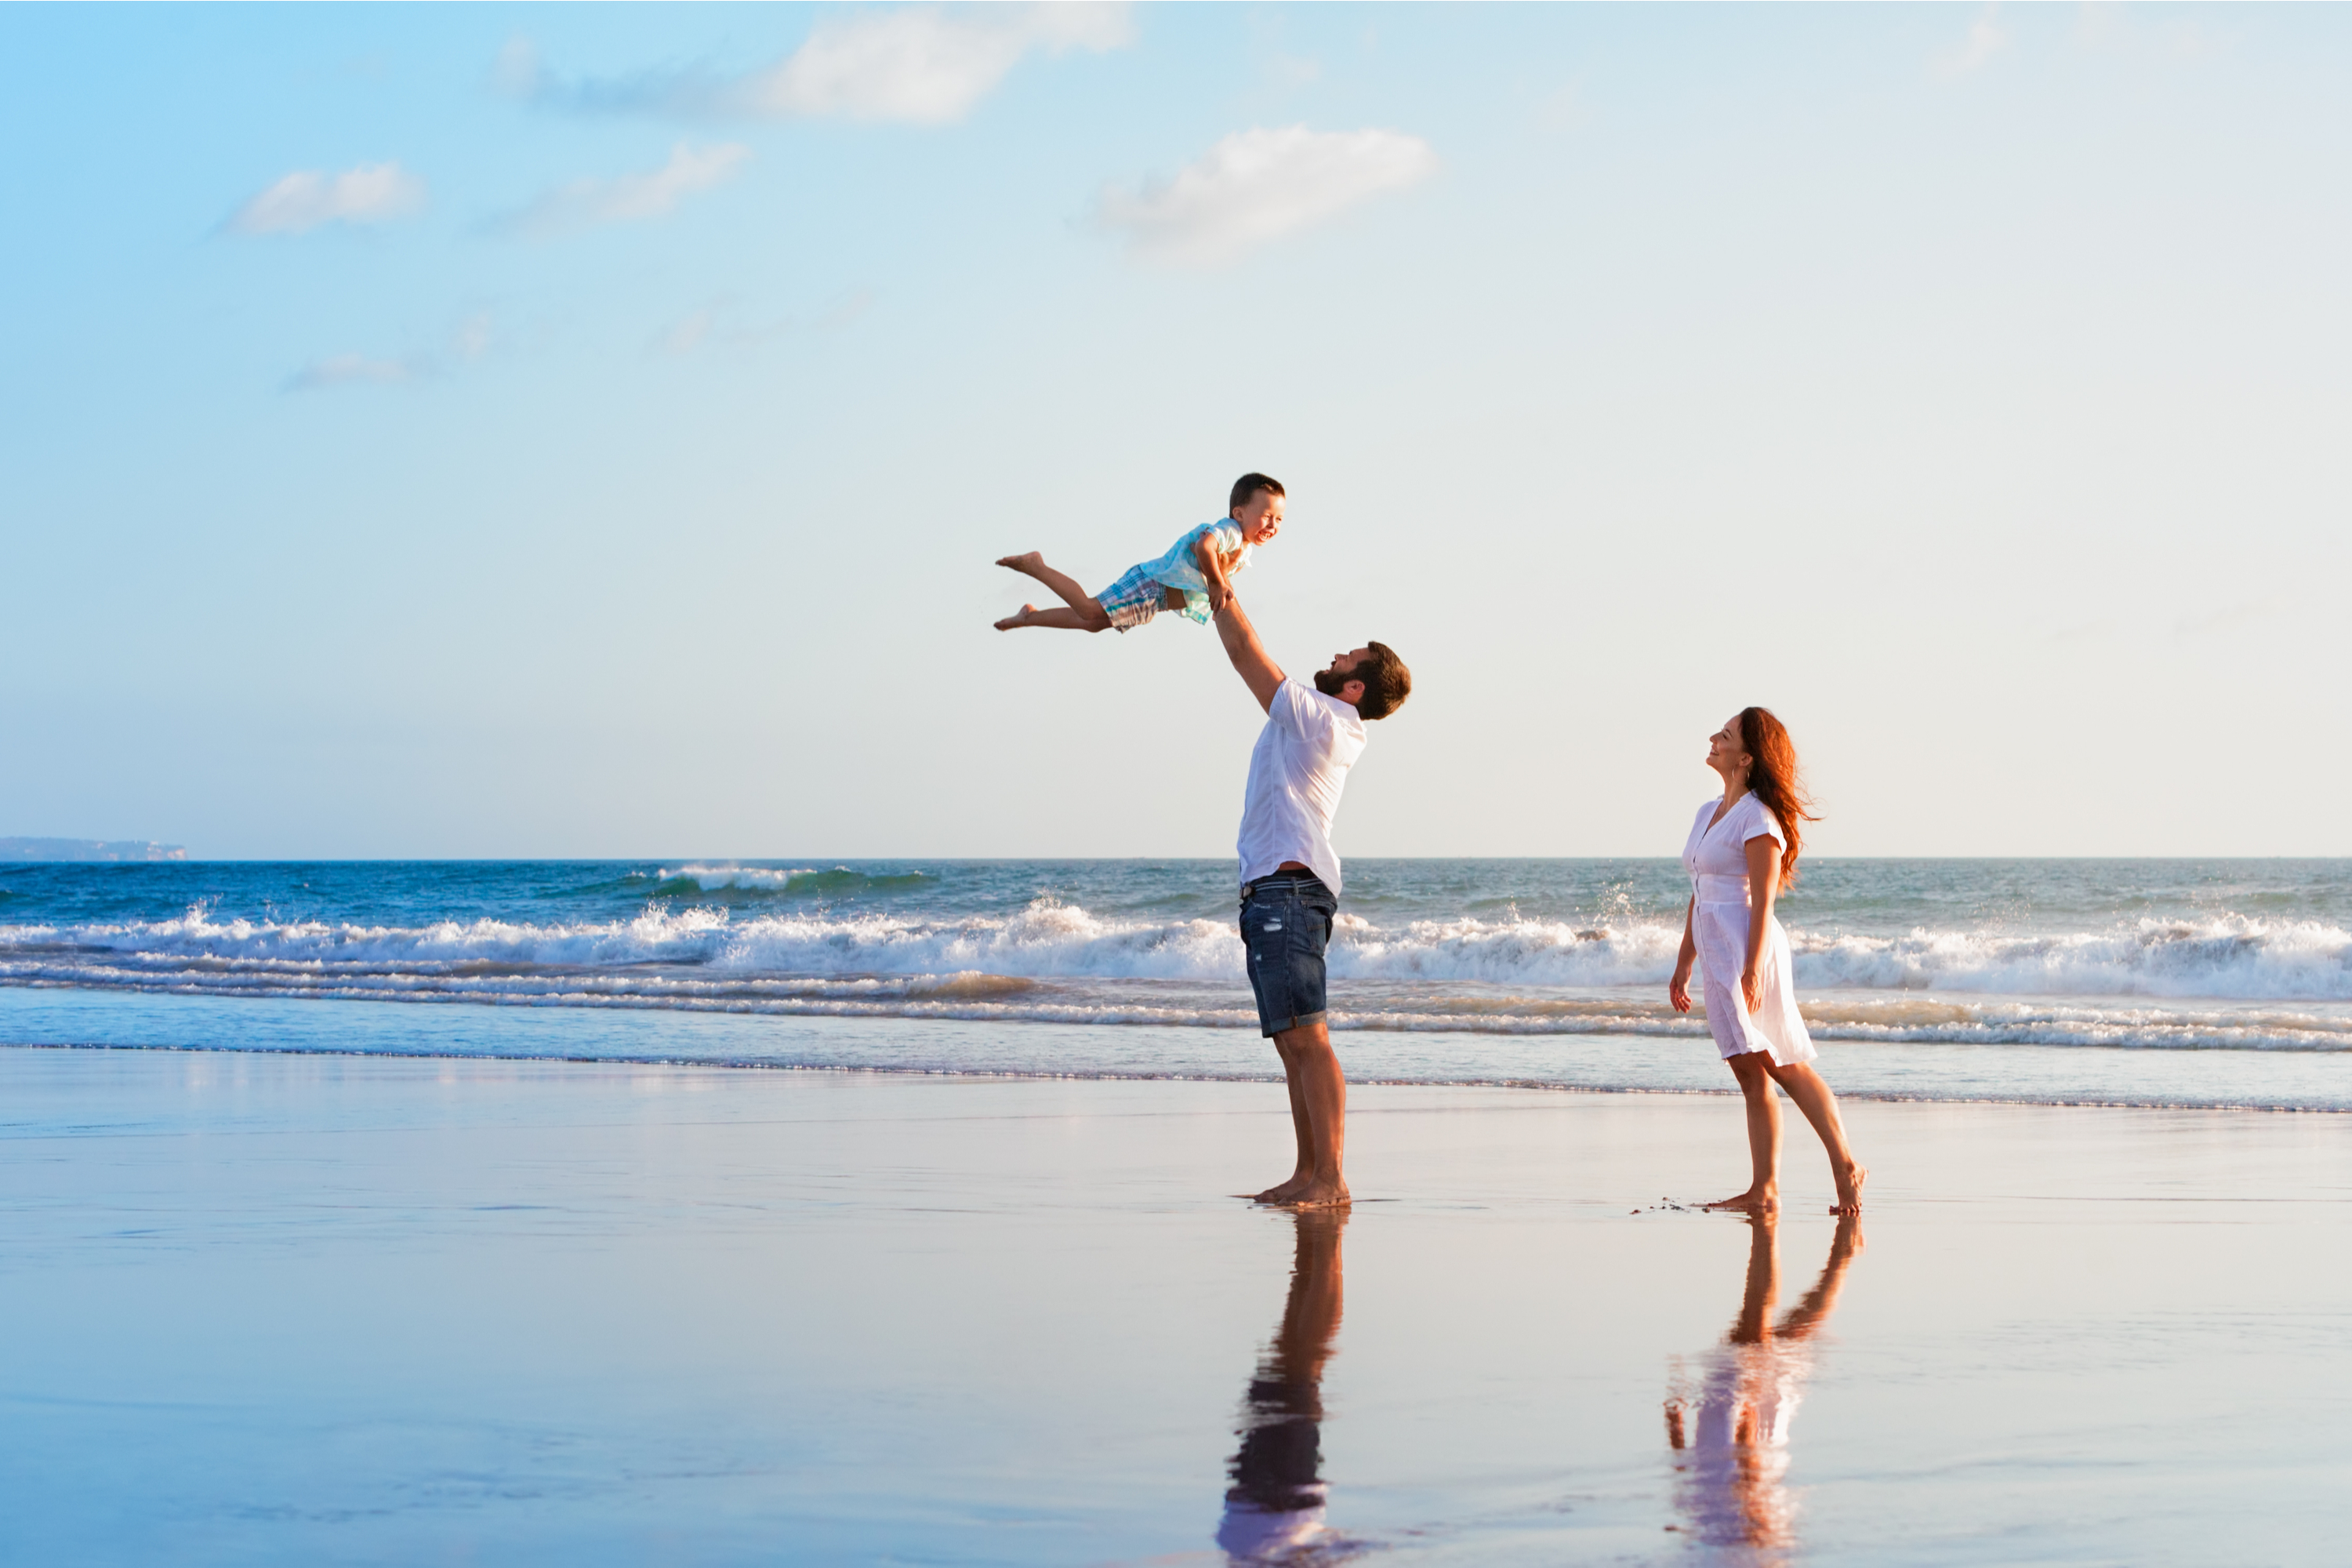 Things You Should Never Do On A Beach   beach etiquette   beach   how to act on a beach   vacations